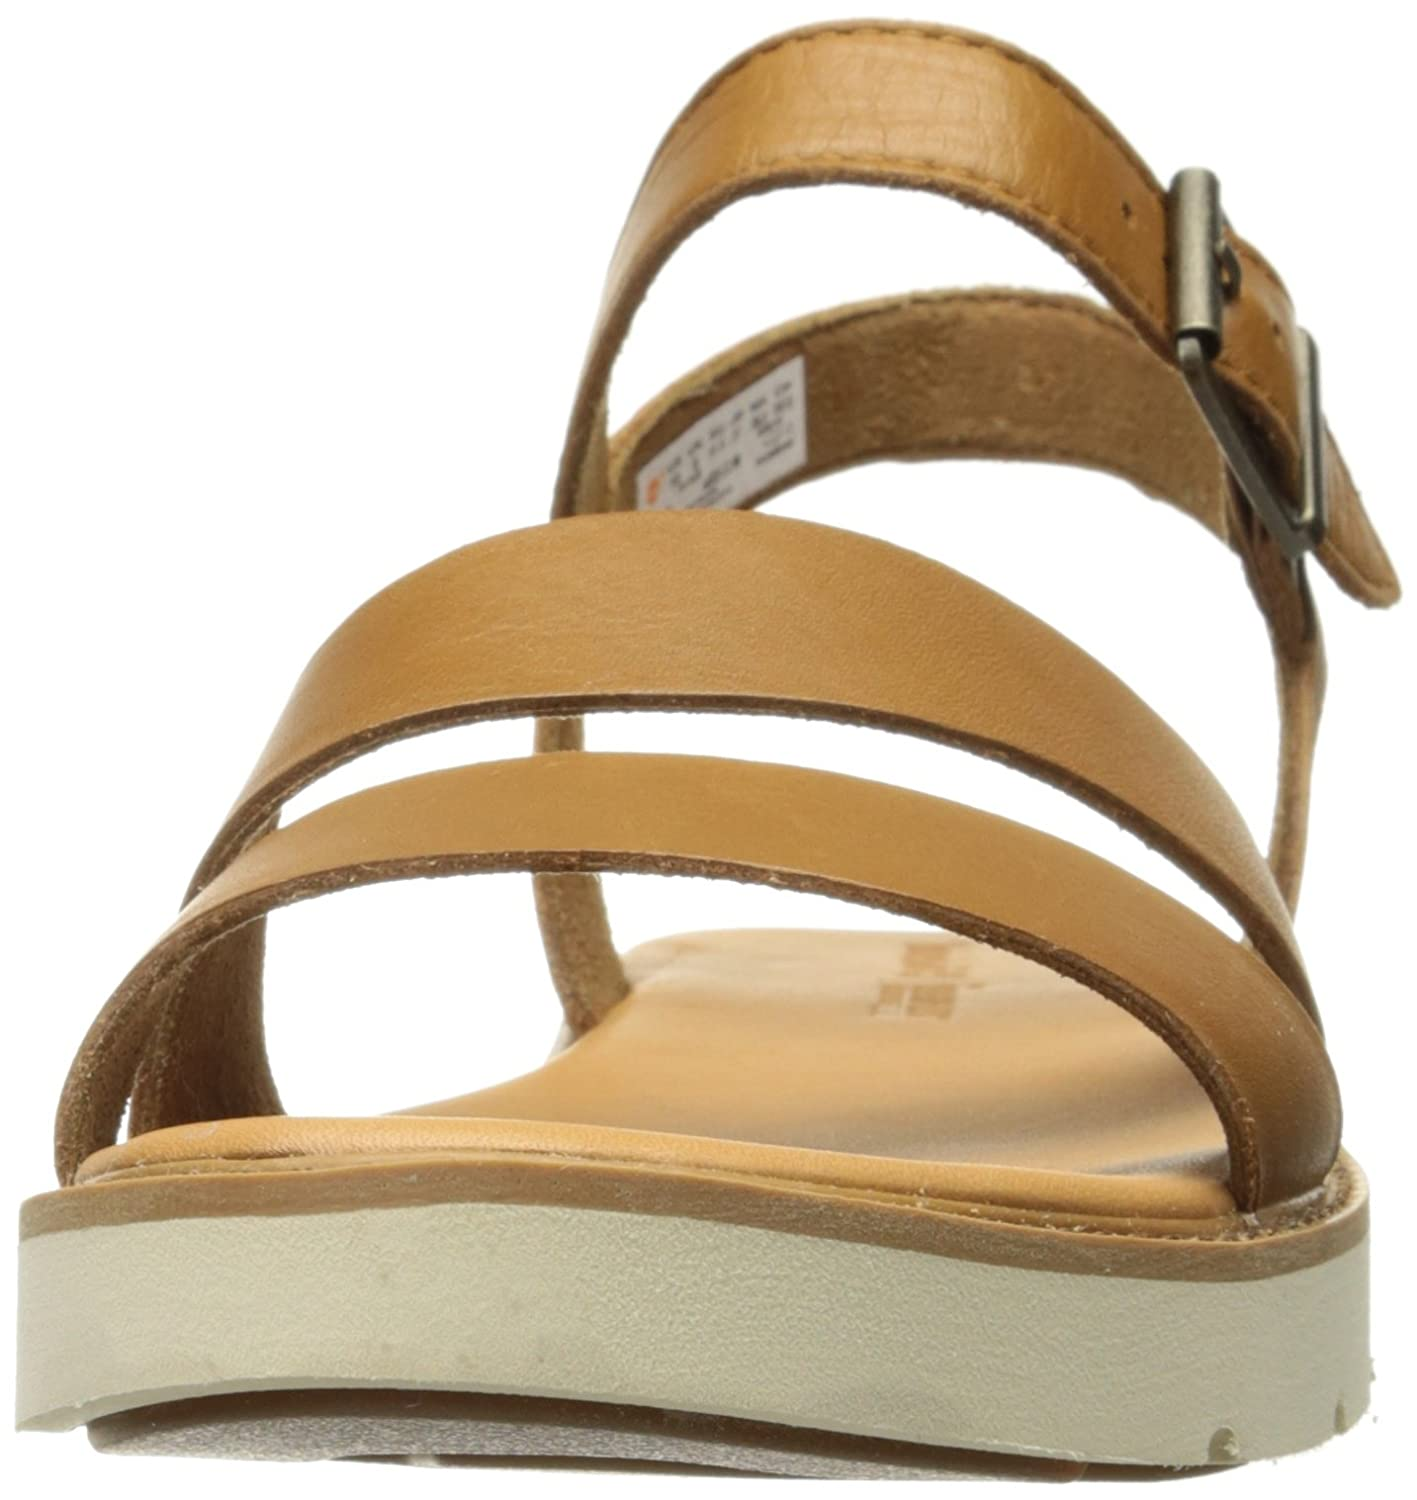 44fa53ae Timberland Women's Bailey Park Asymmetric Y-Strap Platform Sandal:  Amazon.co.uk: Shoes & Bags